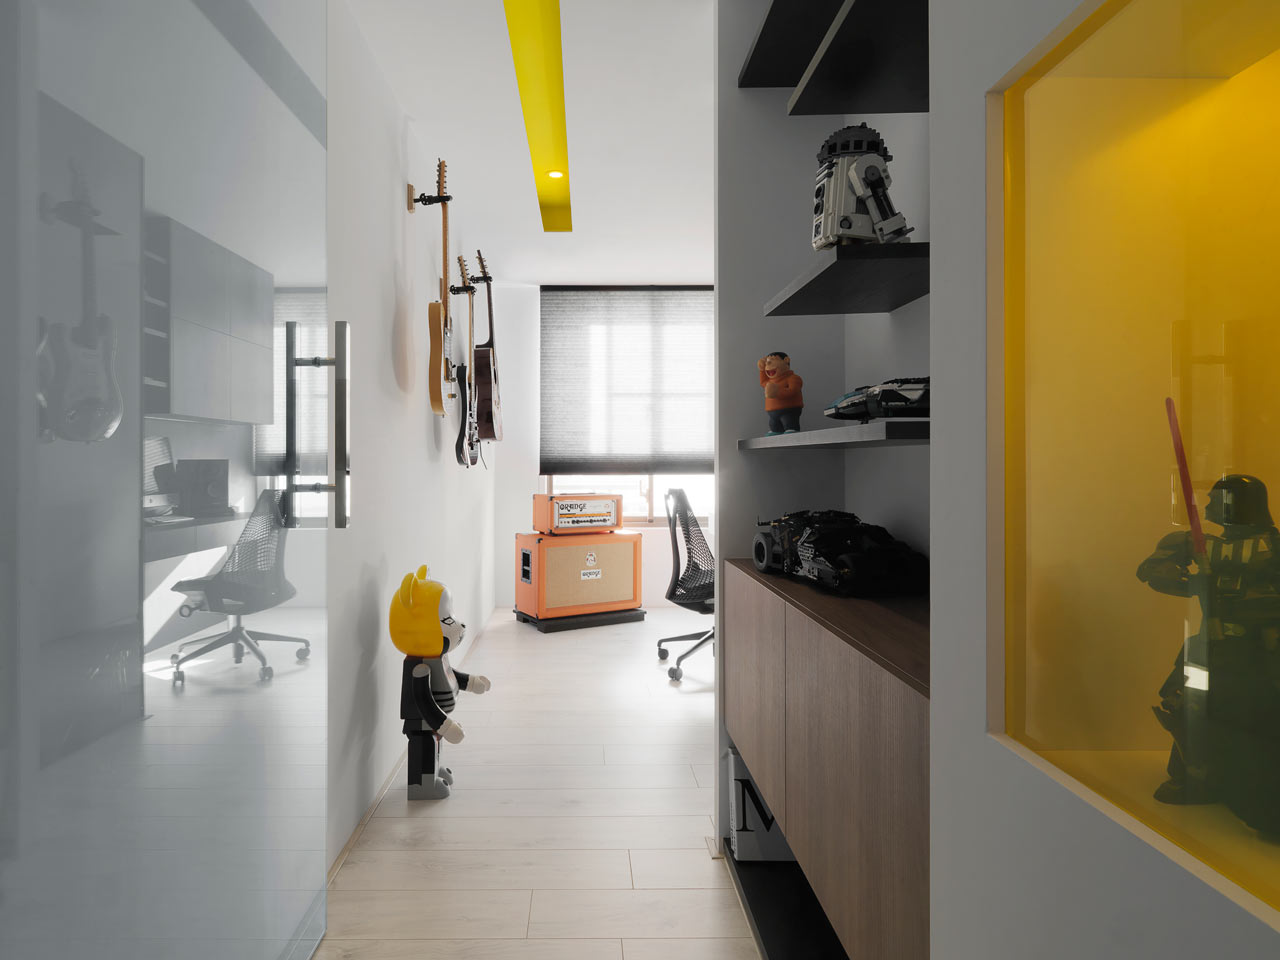 taichung h residence10 Modern Apartment with Bright Yellow Accents